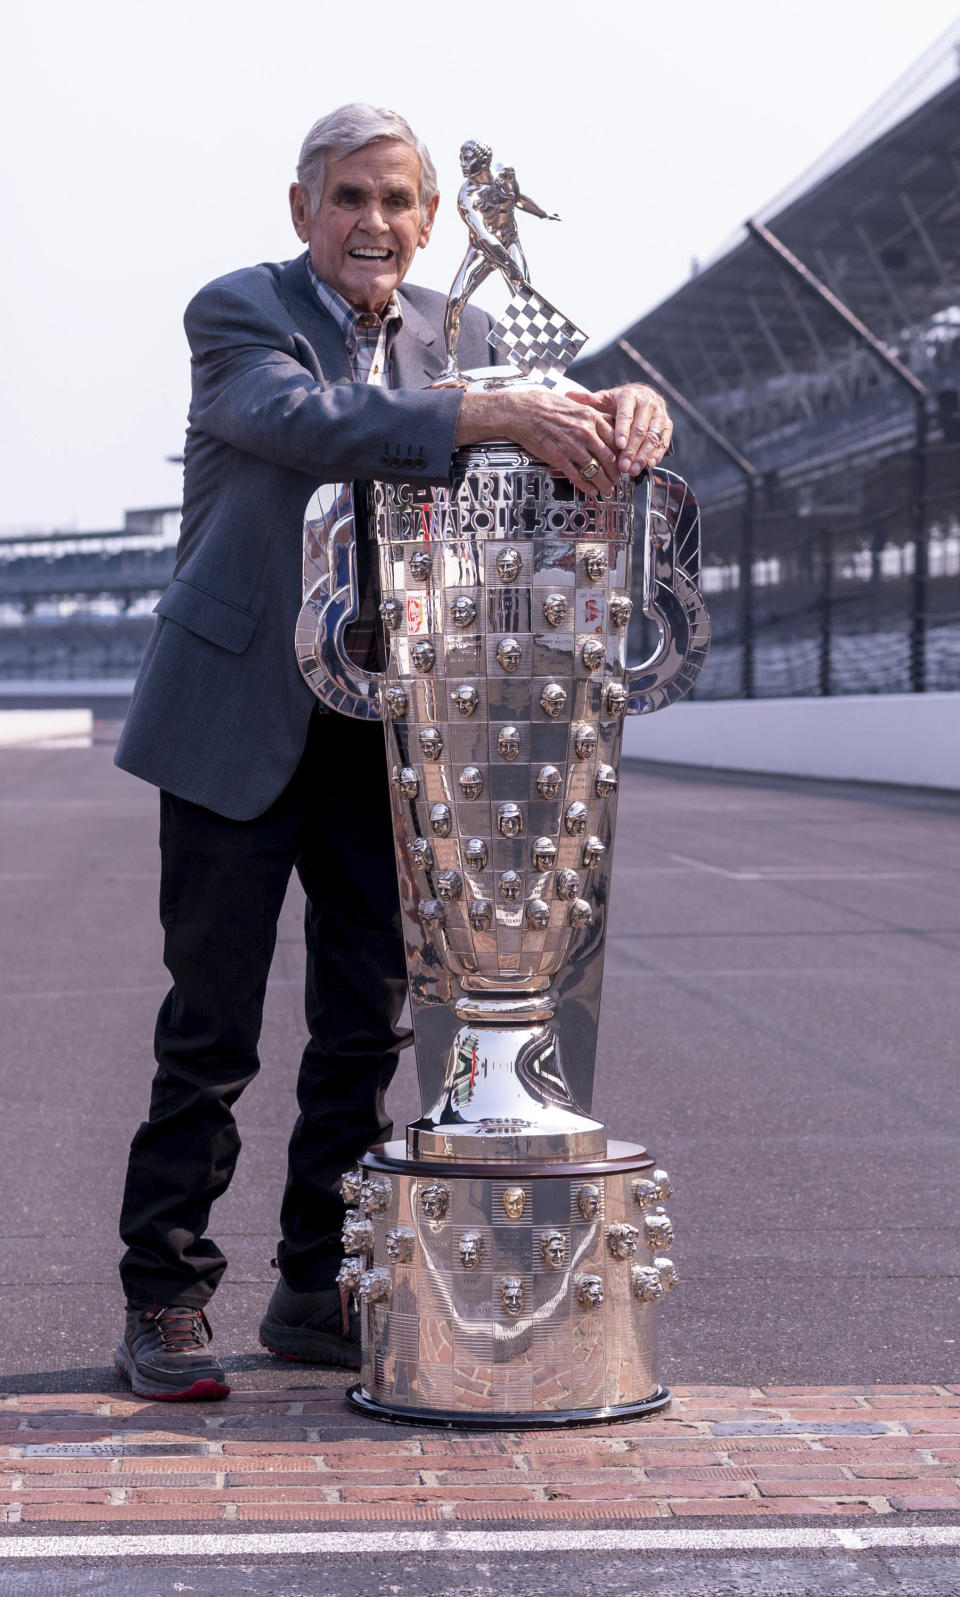 Retired race car driver Al Unser hugs the Borg-Warner Trophy while waiting for other four-time winners of the Indianapolis 500 auto race to arrive for a photo session at the Indianapolis Motor Speedway in Indianapolis, Tuesday, July 20, 2021. Winner of this year's Indy 500, Helio Castroneves, gathered with four-time winners - A.J. Foyt (1961, 1964, 1967, 1977), Unser (1970, 1971, 1978, 1987) and Rick Mears (1979, 1984, 1988, 1991) at the track. Castroneves won the race in 2001, 2002, 2009 and 2021. (AP Photo/Doug McSchooler)